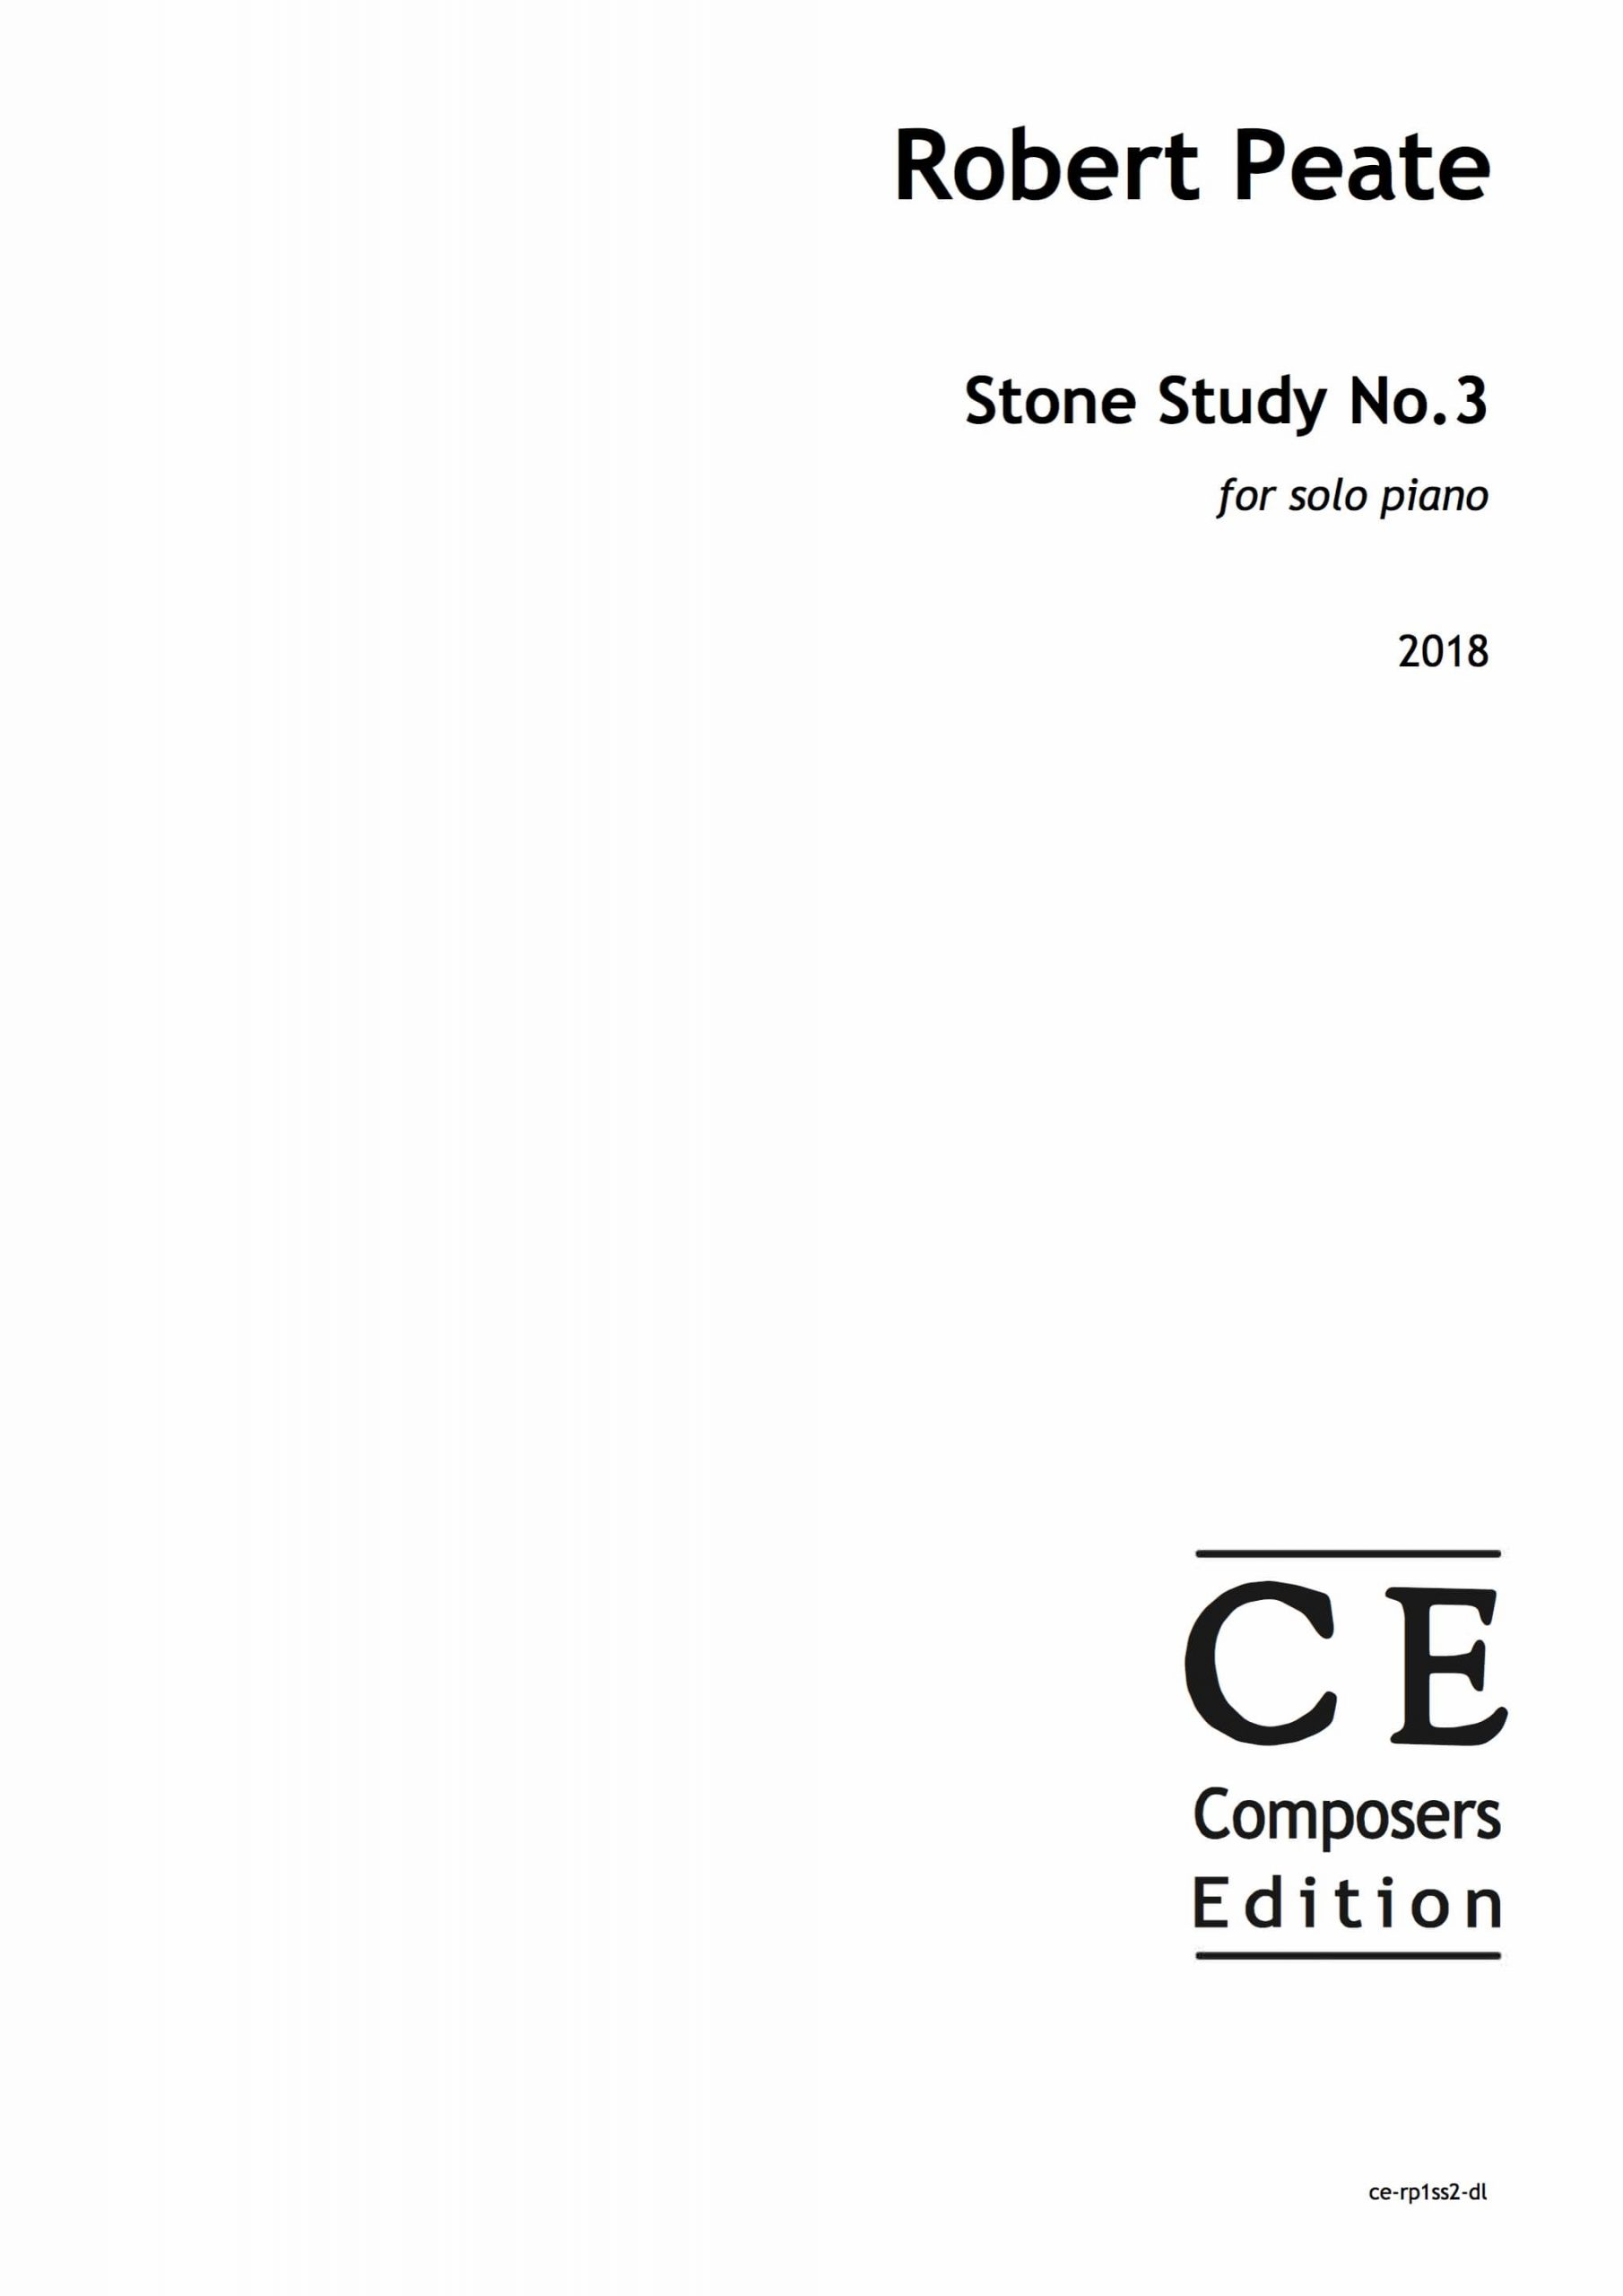 Robert Peate: Stone Study No.3 for solo piano